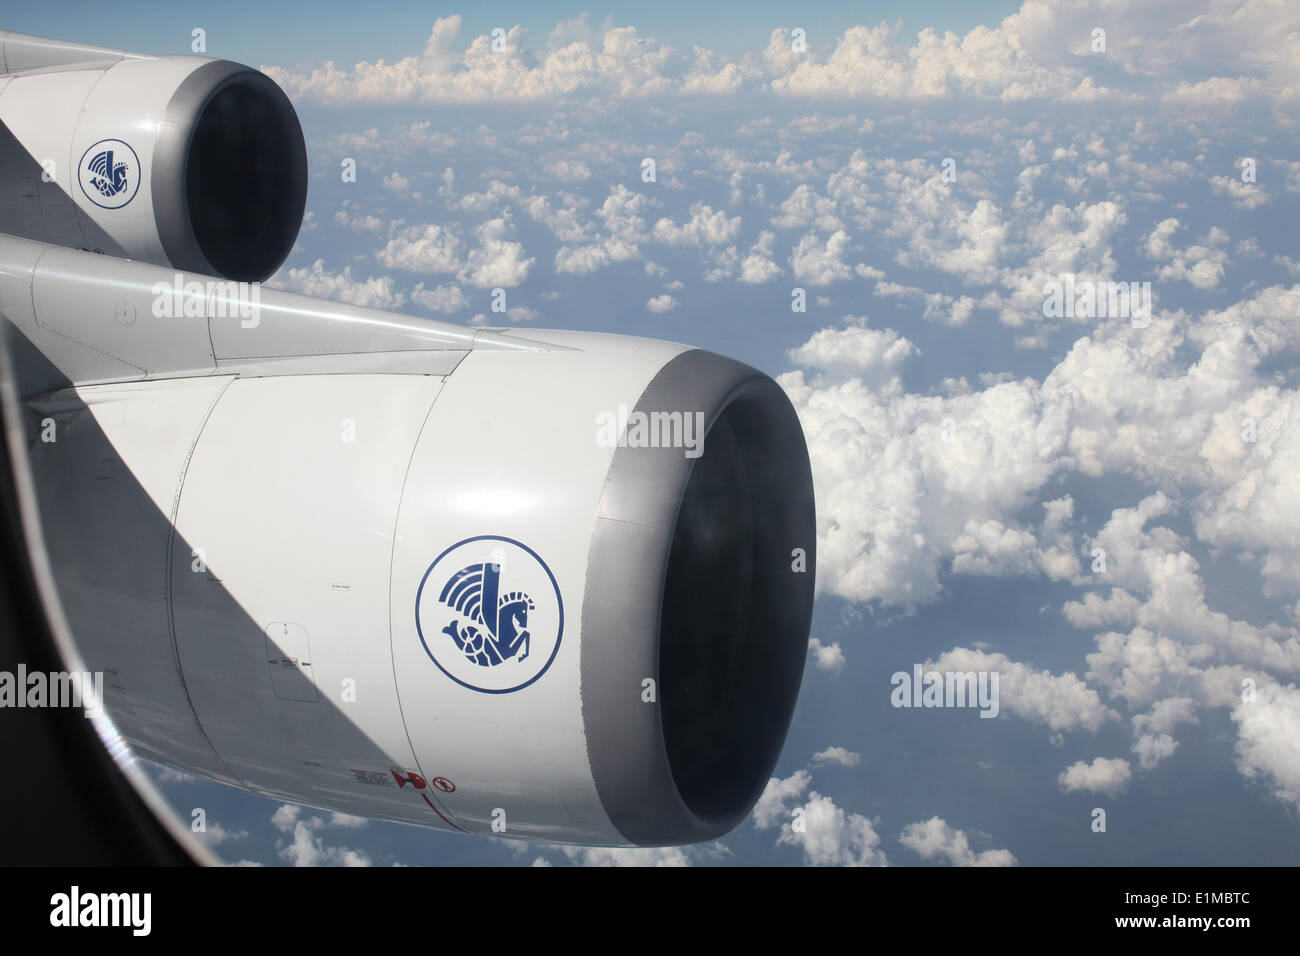 Air France 747 boeing - Stock Image